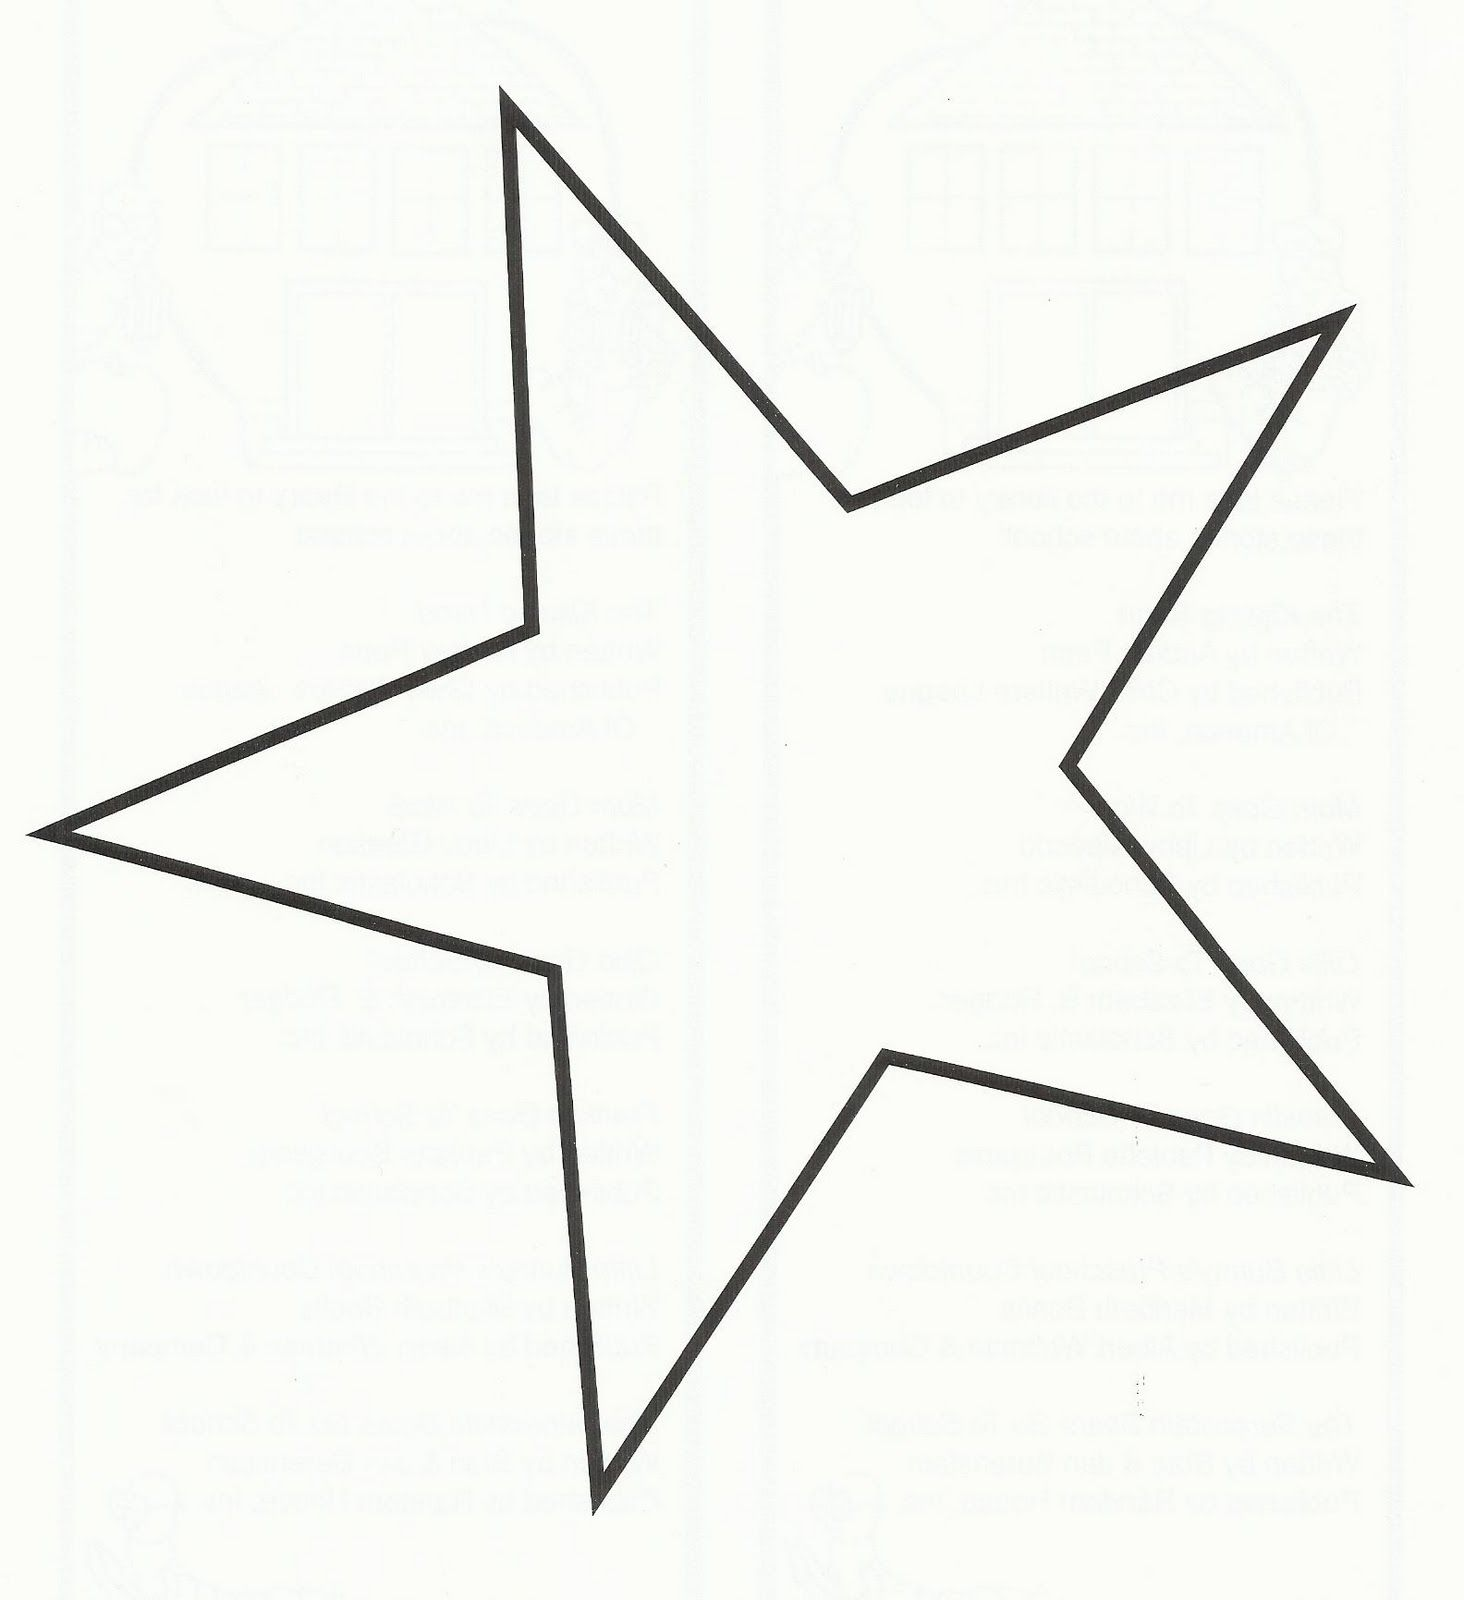 photograph relating to Star Template Printable Free identified as Star Template Printable zoominmedical. Shrink plastic